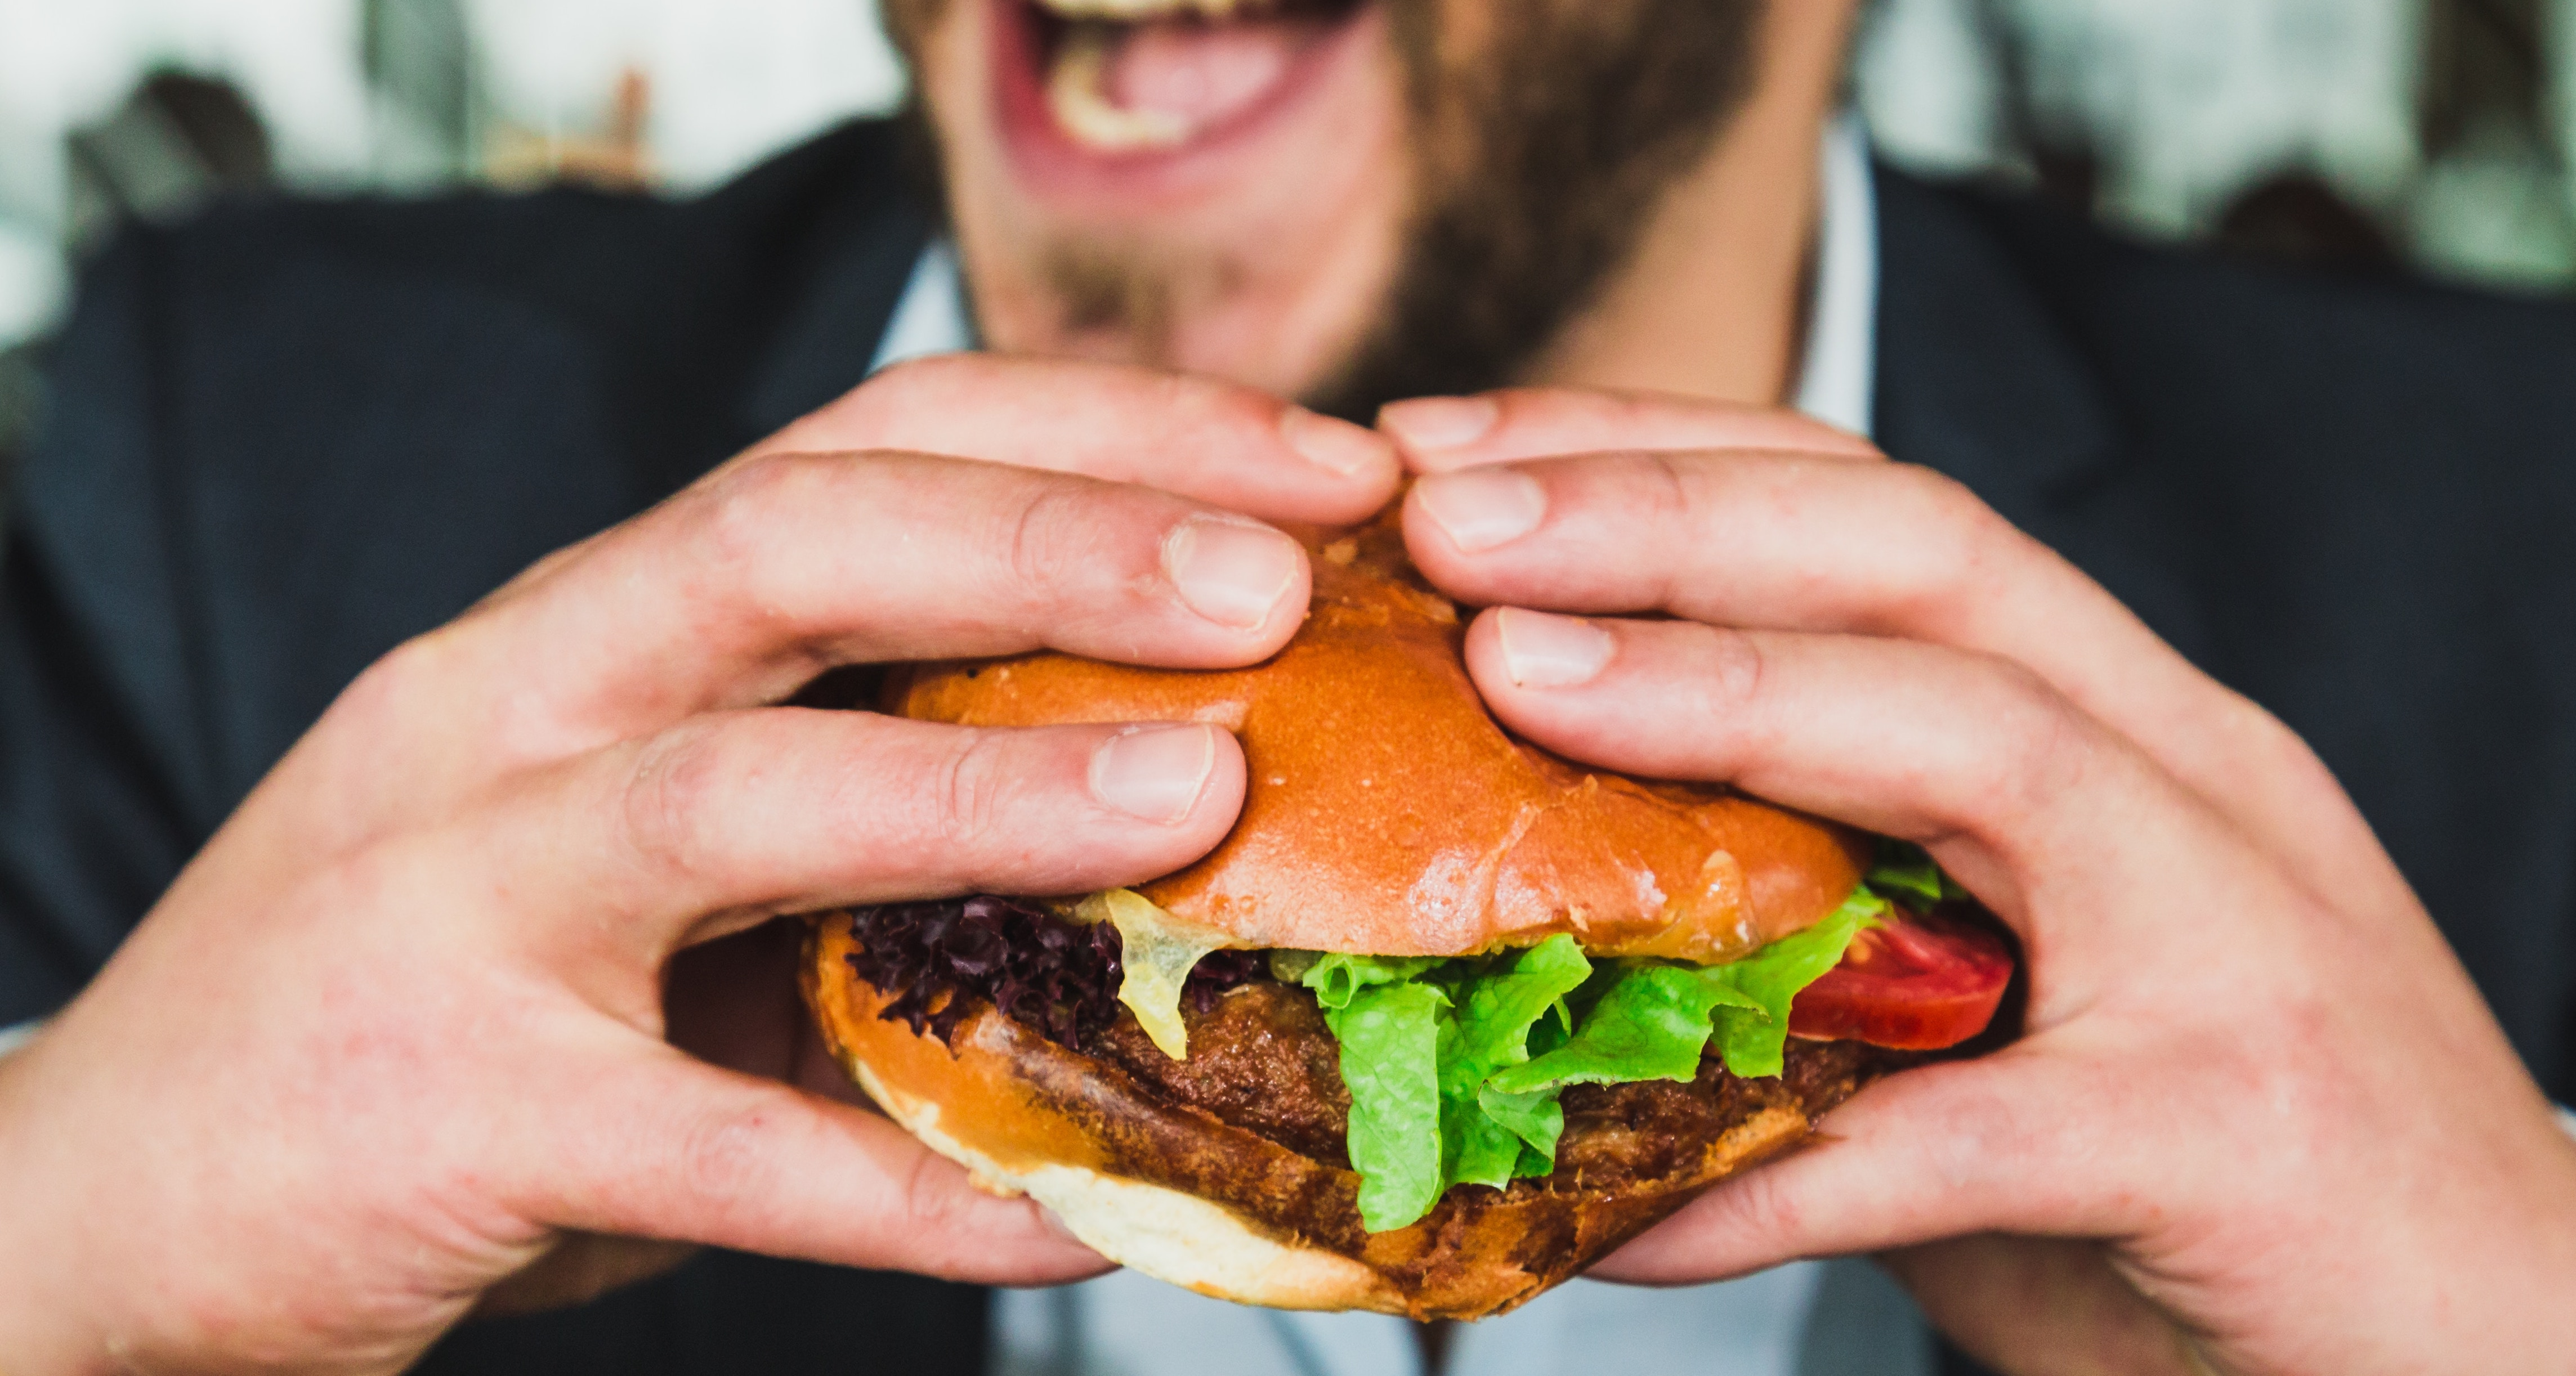 Whopper burger in hand